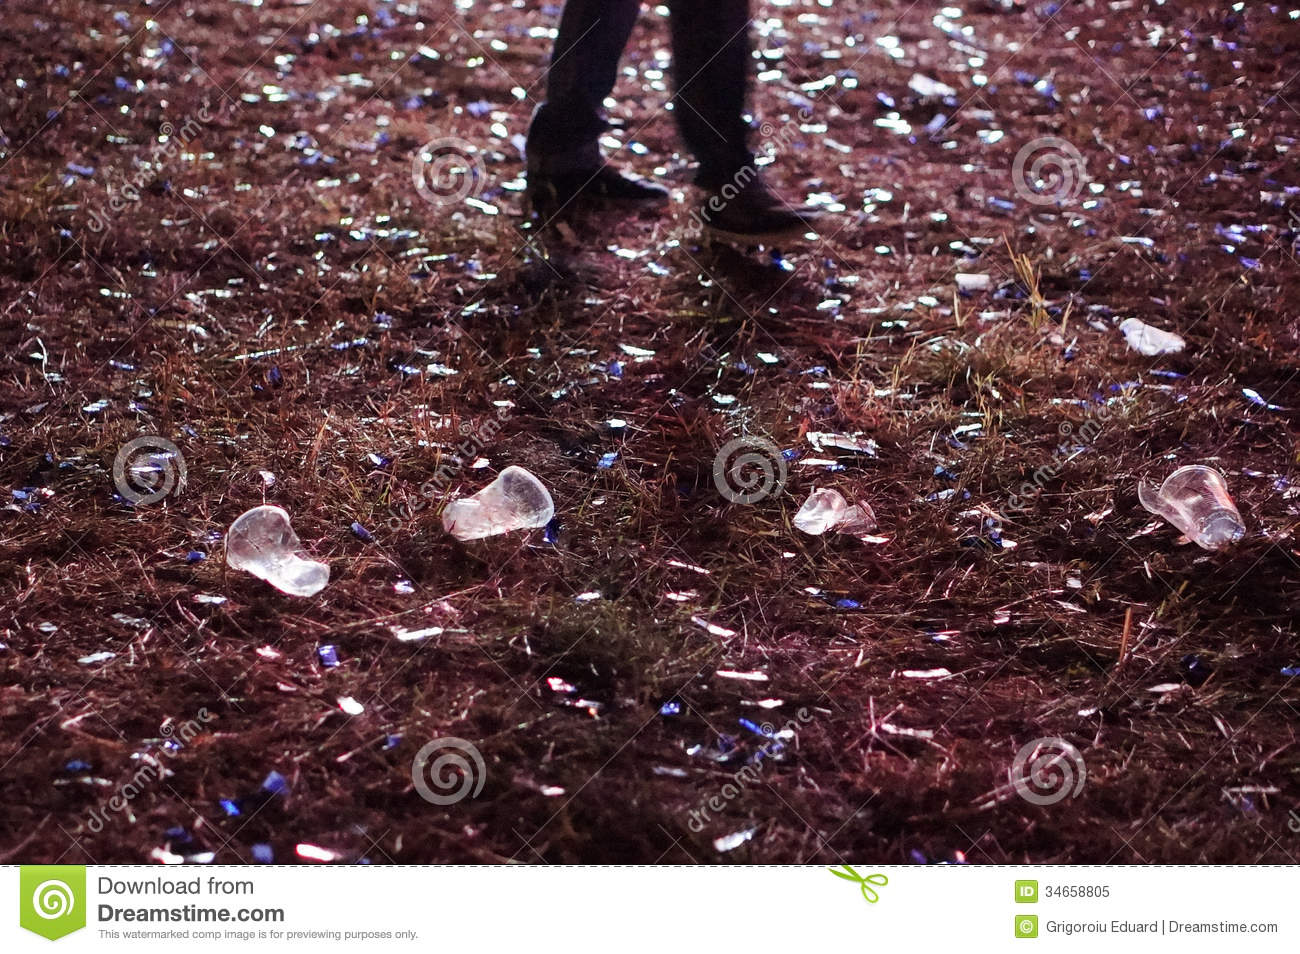 Beer cups and debrees with feet after concert Royalty Free Stock Photo